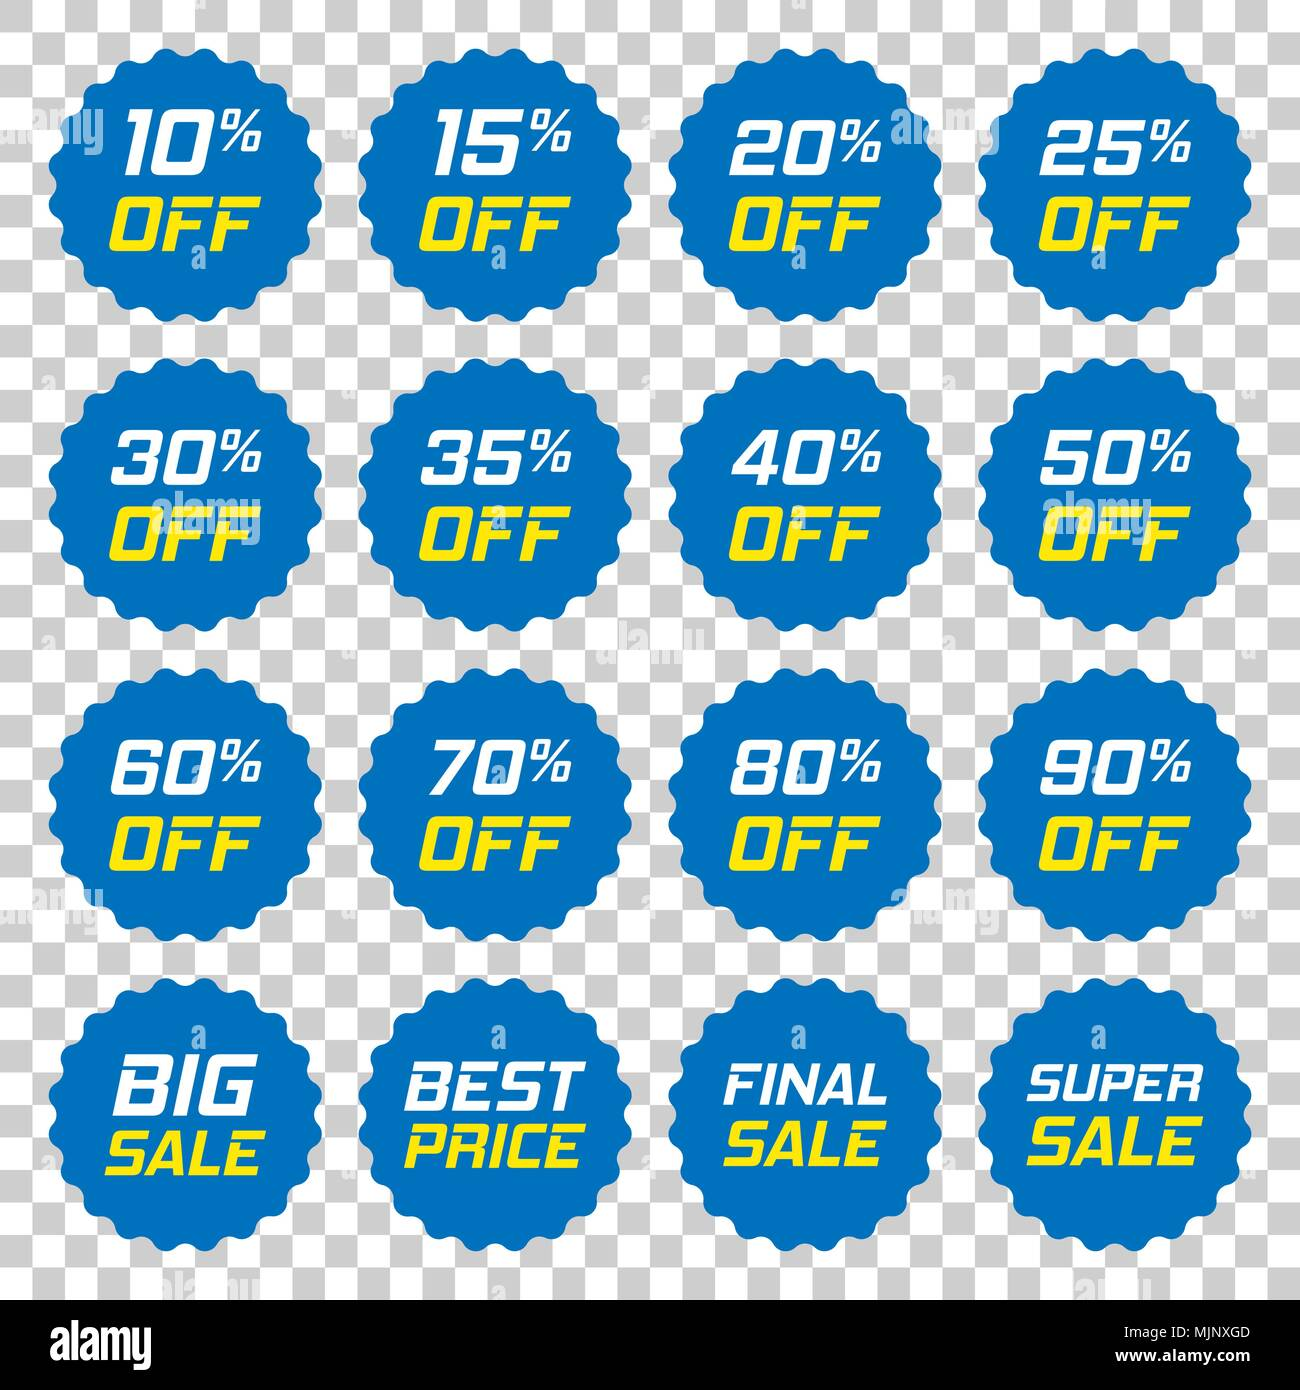 Discount stickers vector icon in flat style. Sale tag sign illustration on isolated transparent background. Promotion 10, 15, 20, 25, 30, 35, 40, 50,  - Stock Vector